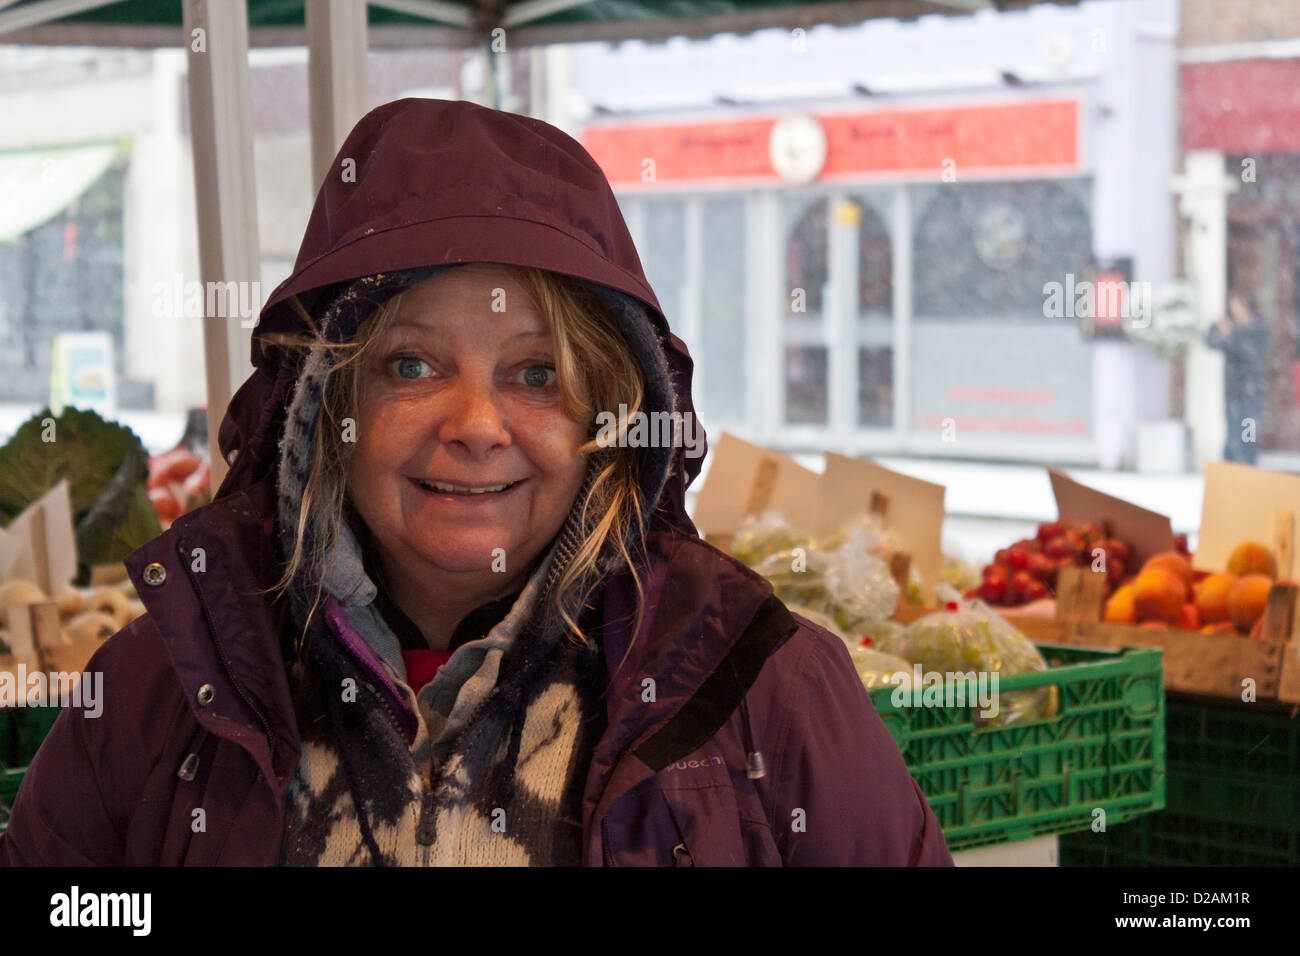 https://c7.alamy.com/comp/D2AM1R/happy-market-trader-at-her-fruit-and-vegetable-stall-in-the-town-centre-D2AM1R.jpg